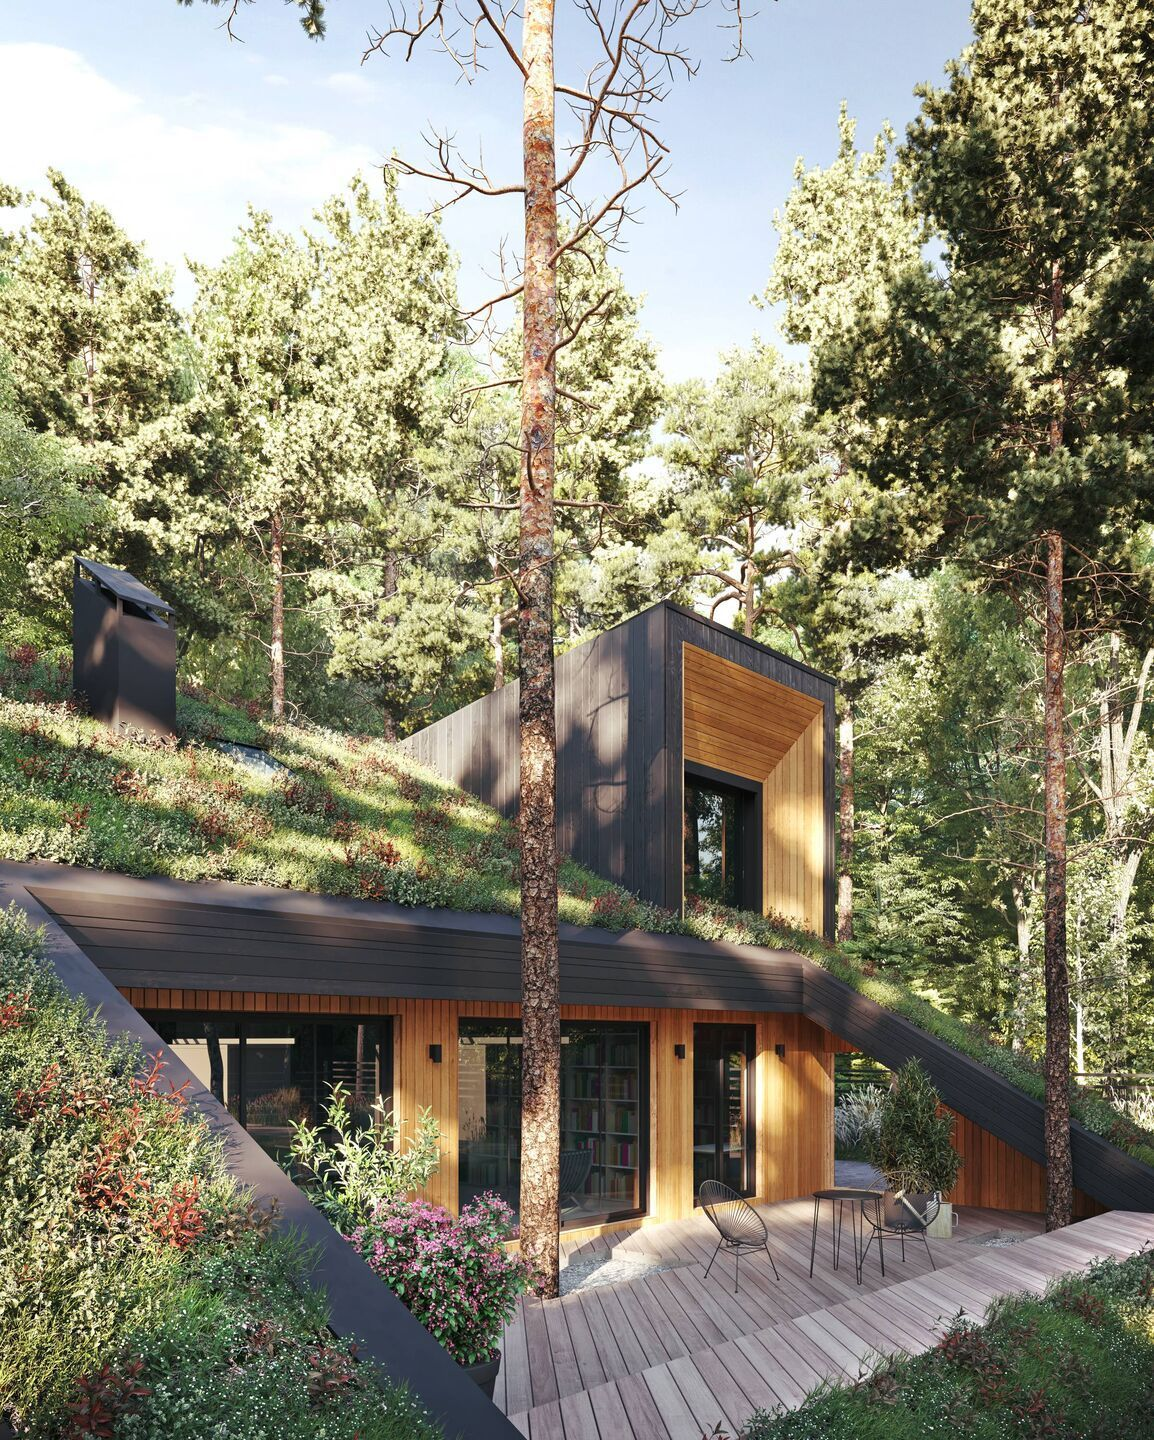 Lights, windows, cedar, building around the trees... and to have a green roof... with a ramp, at that!